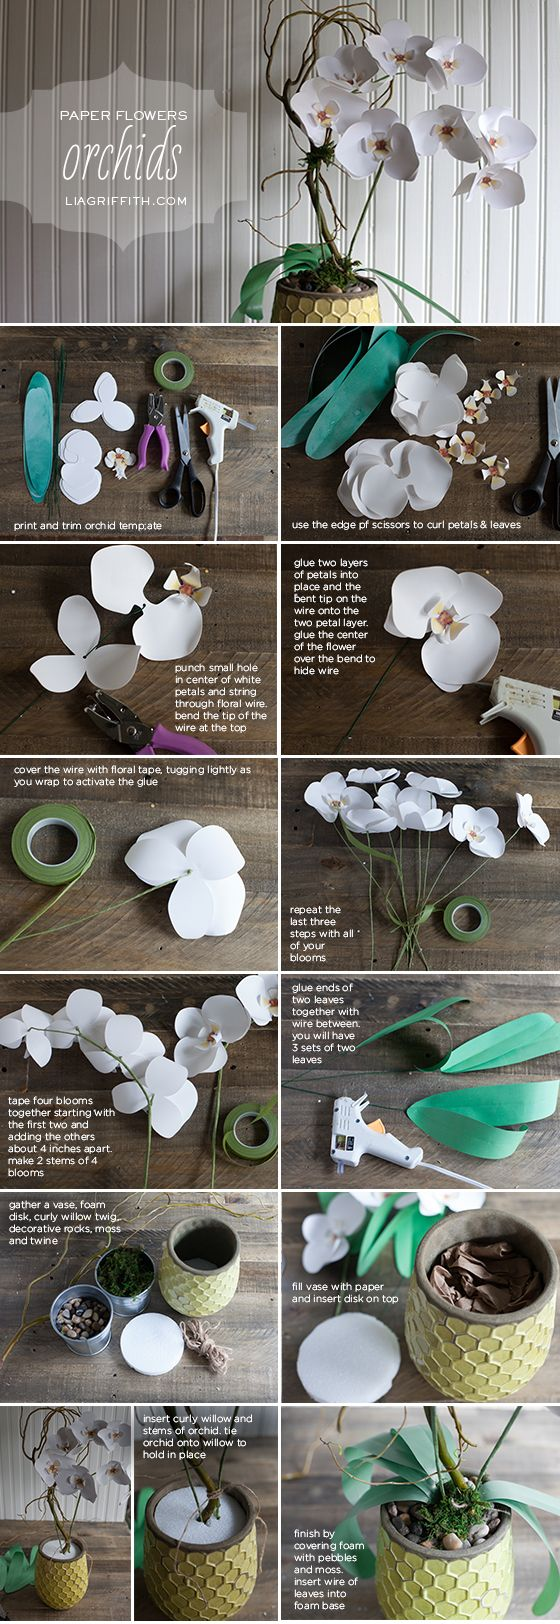 Make a Gorgeous Paper Orchid Plant  Diy paper Orchid and Tutorials